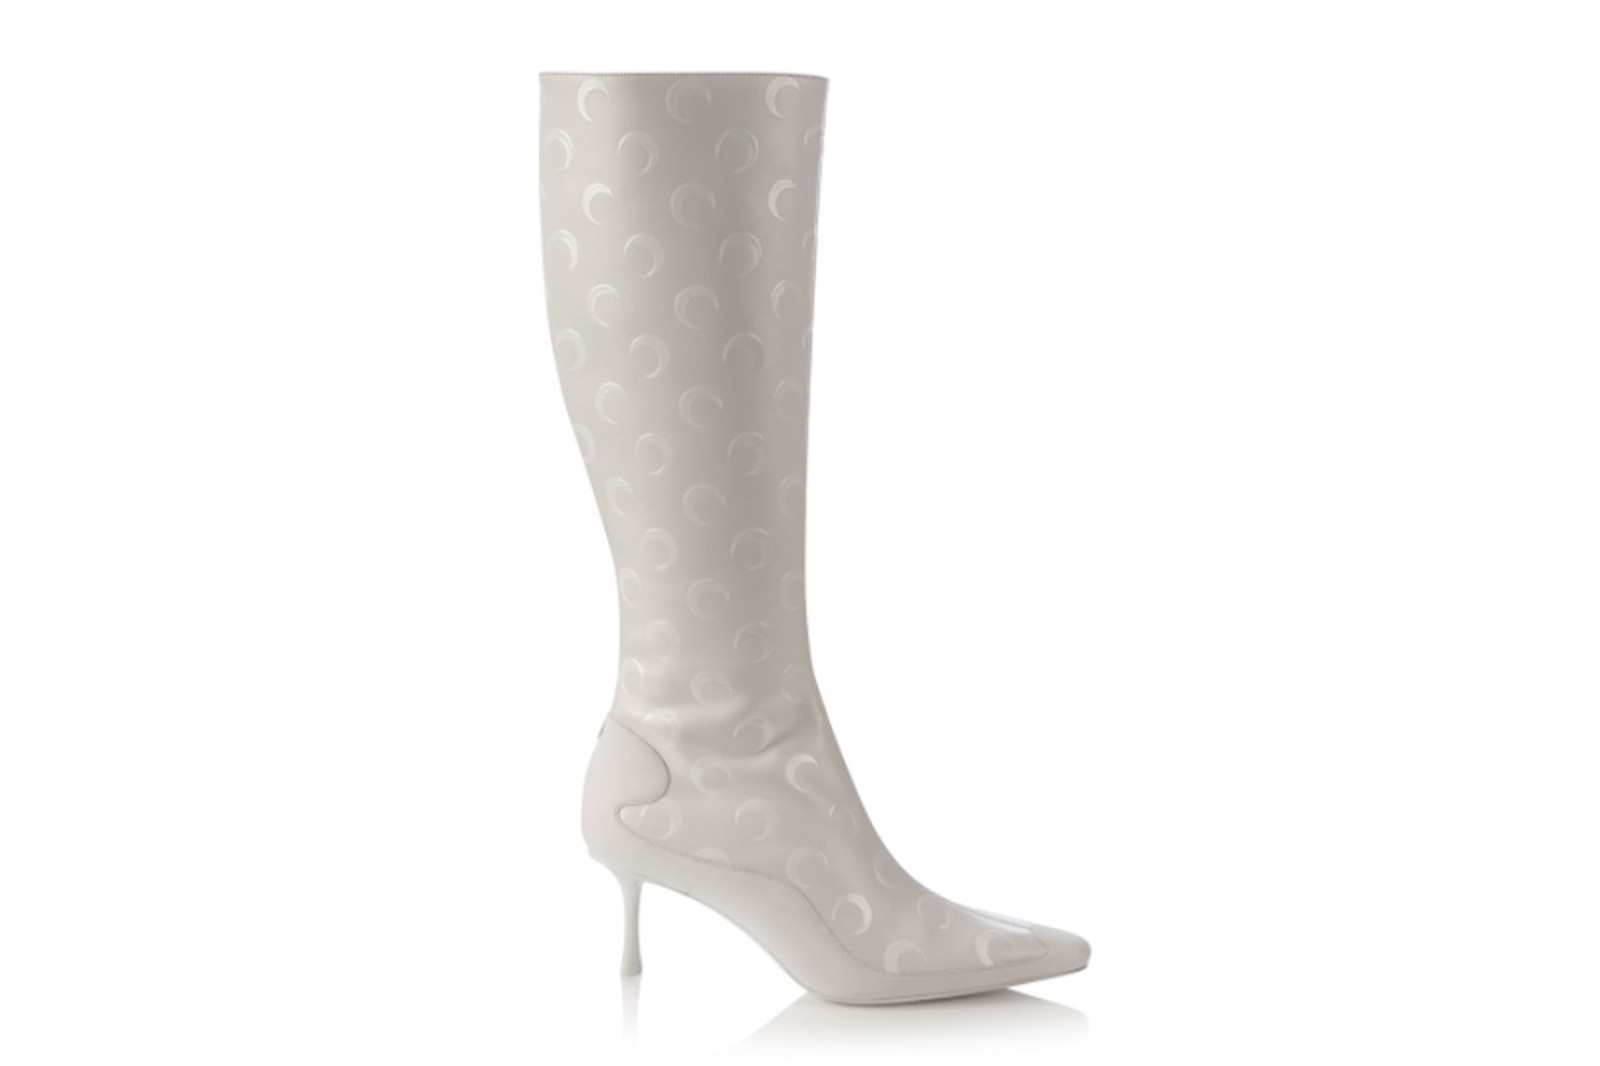 marine serre jimmy choo shoes collaboration sock heels boots release where to buy